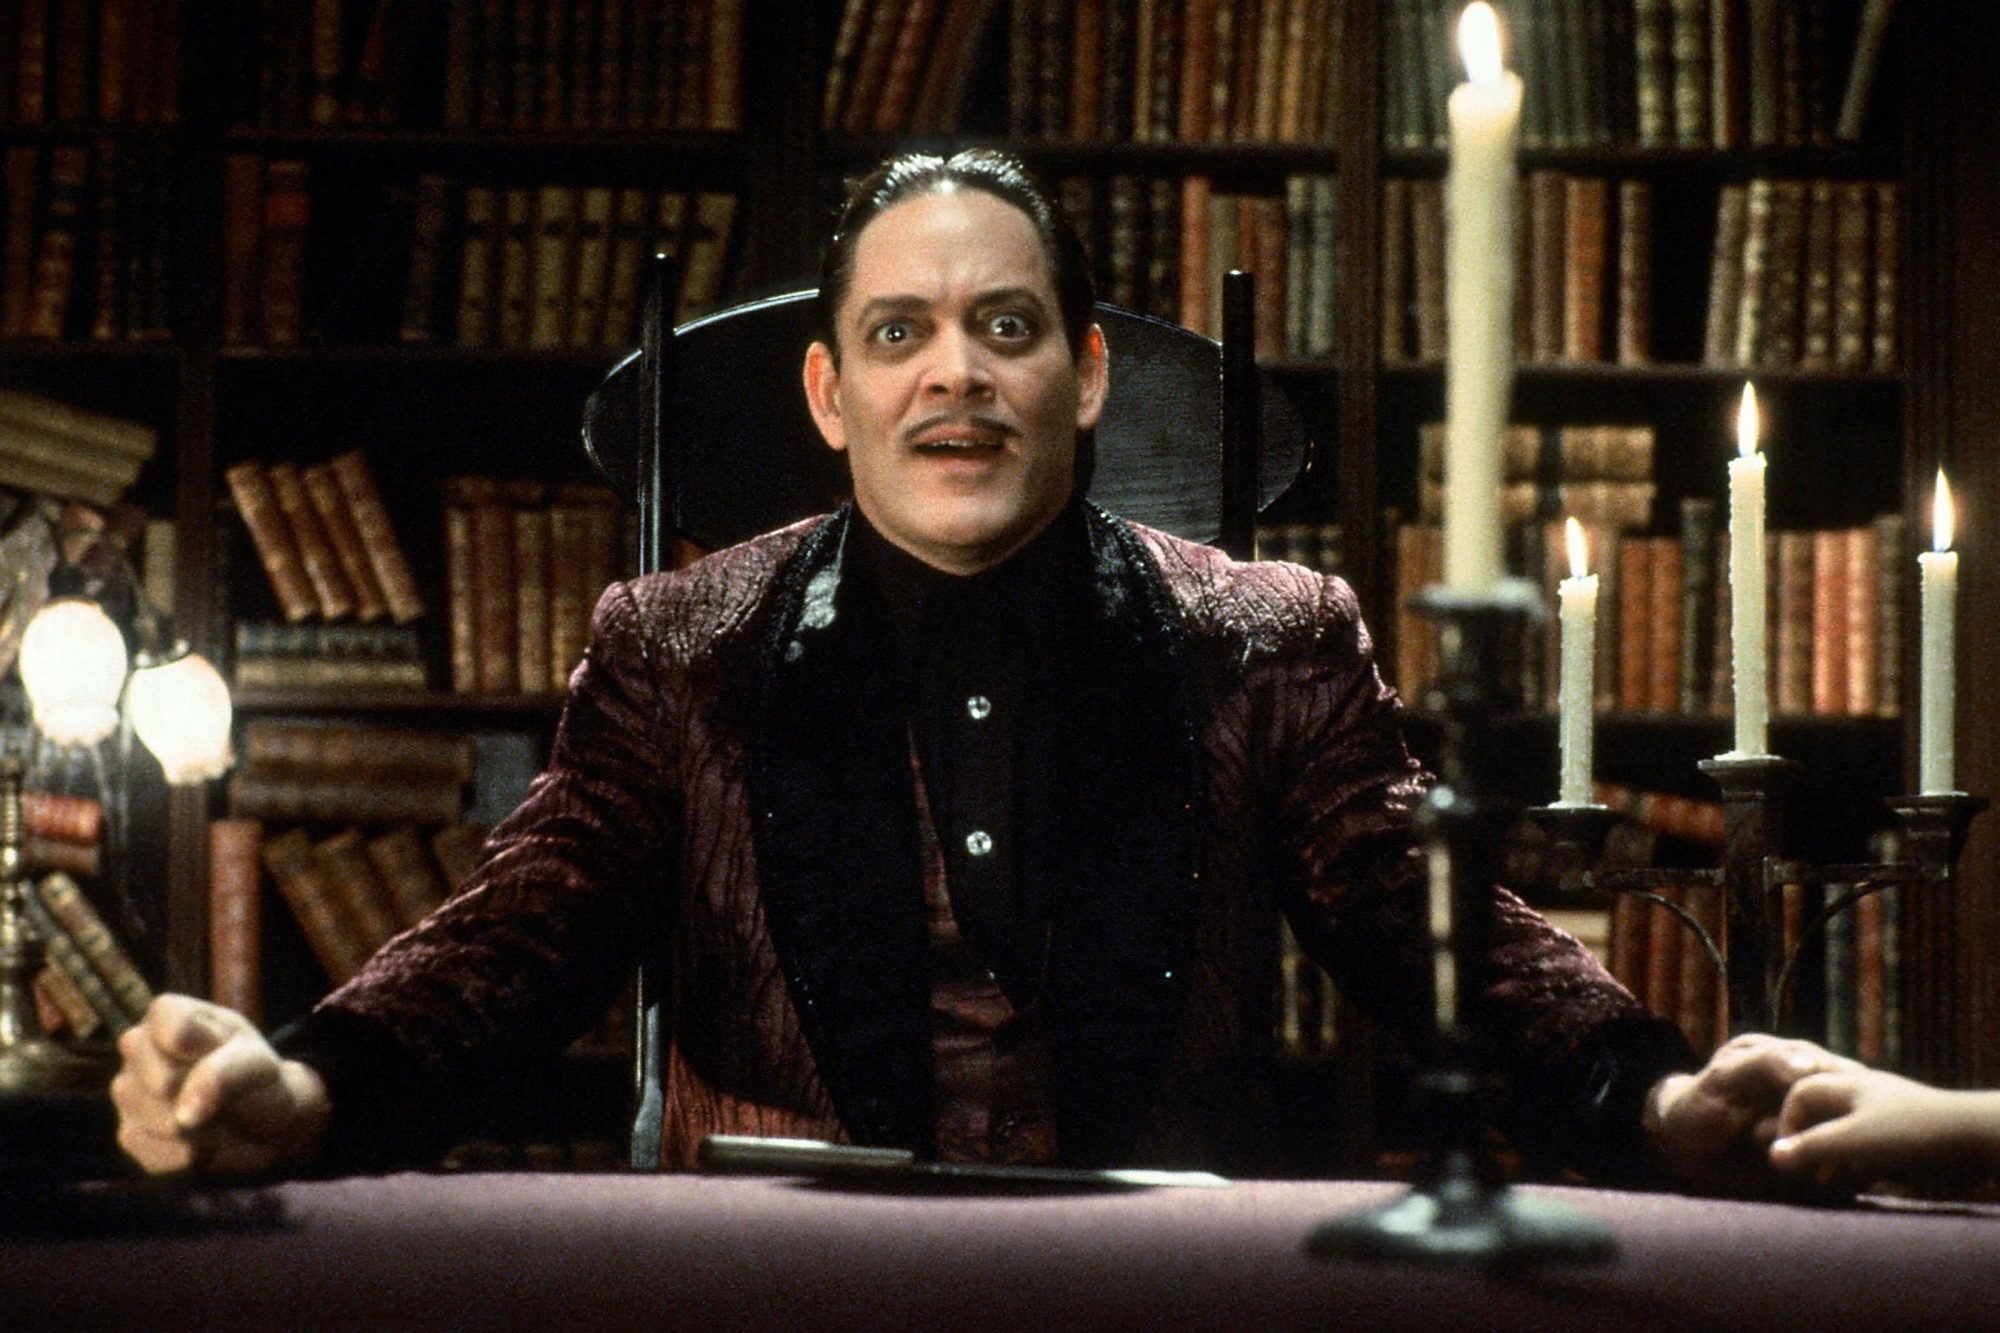 THE ADDAMS FAMILY, Raul Julia, 1991, (c) Paramount/courtesy Everett Collection